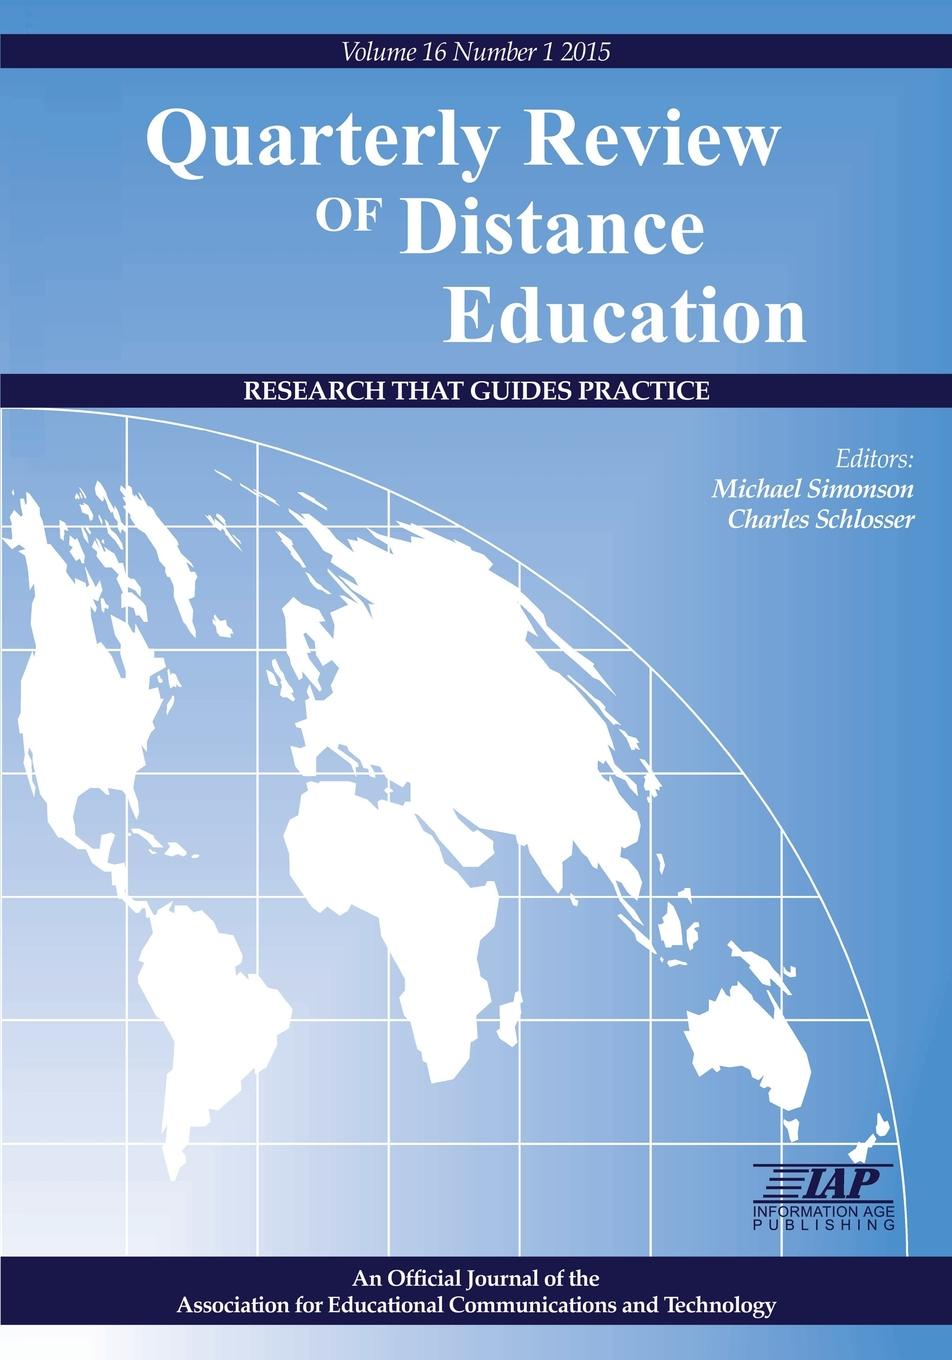 Quarterly Review of Distance Education Volume 16, Number 1, 2015 недорго, оригинальная цена